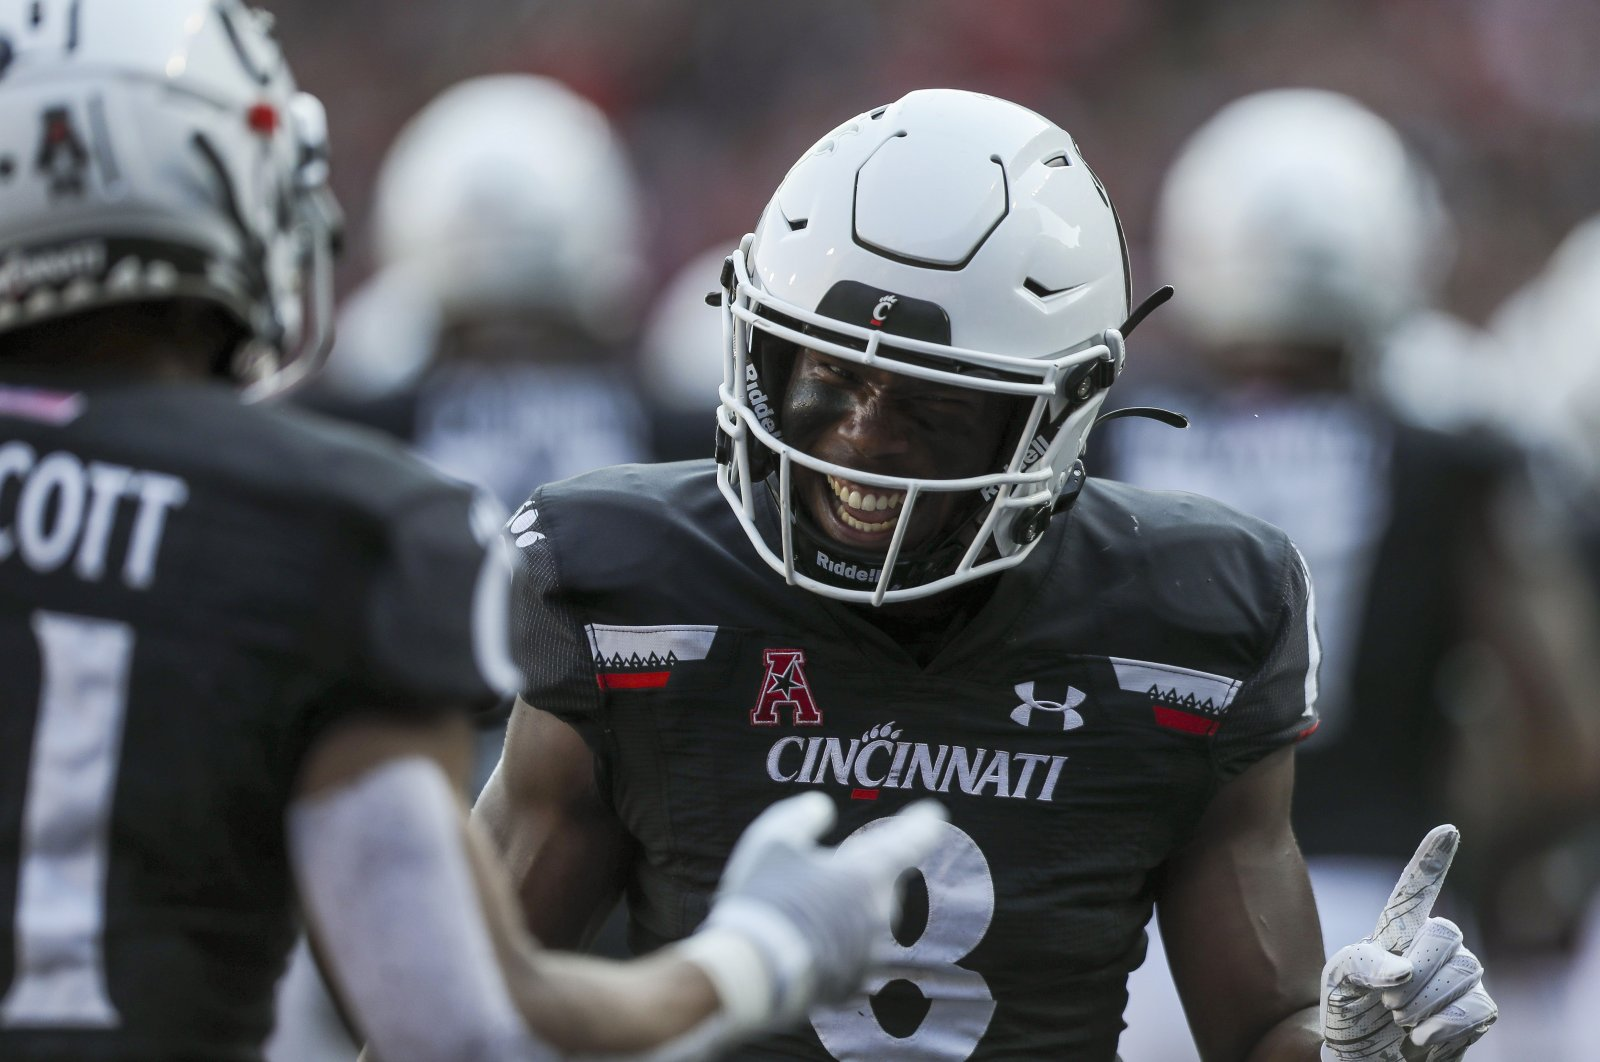 Cincinnati Bearcats wide receiver Michael Young Jr. (8) celebrates with wide receiver Tyler Scott (21) after a touchdown against the Murray State Racers in the second half at Nippert Stadium, Cincinnati, Ohio, U.S., Sept. 11, 2021. (Katie Stratman-USA TODAY Sports via REUTERS)